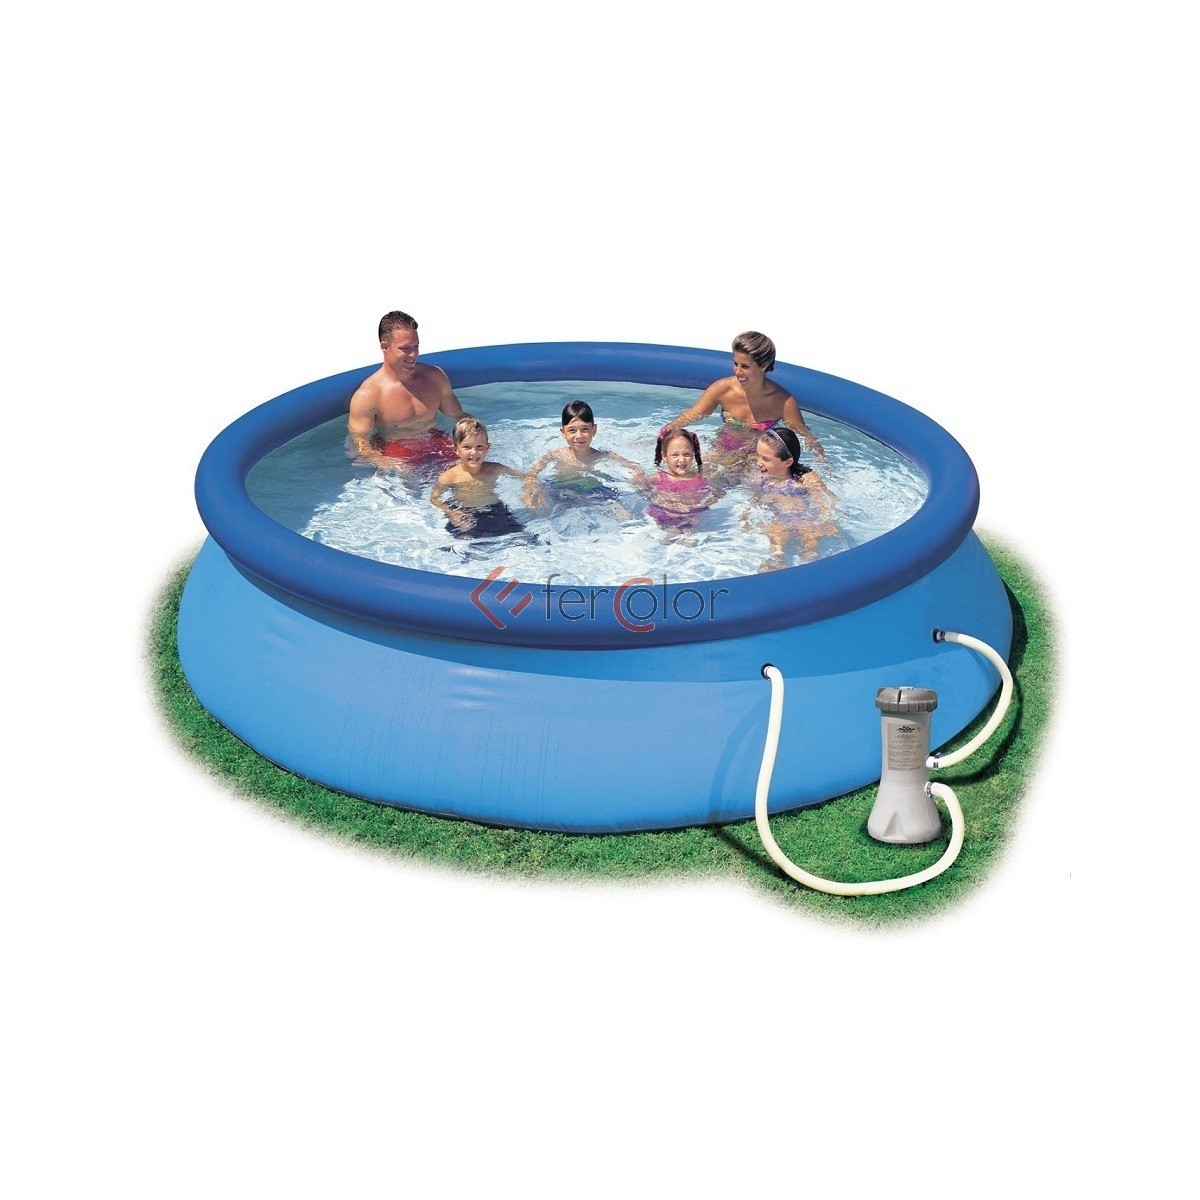 Piscina intex easy set 366x76 tonda con pompa filtro for Filtro piscina intex